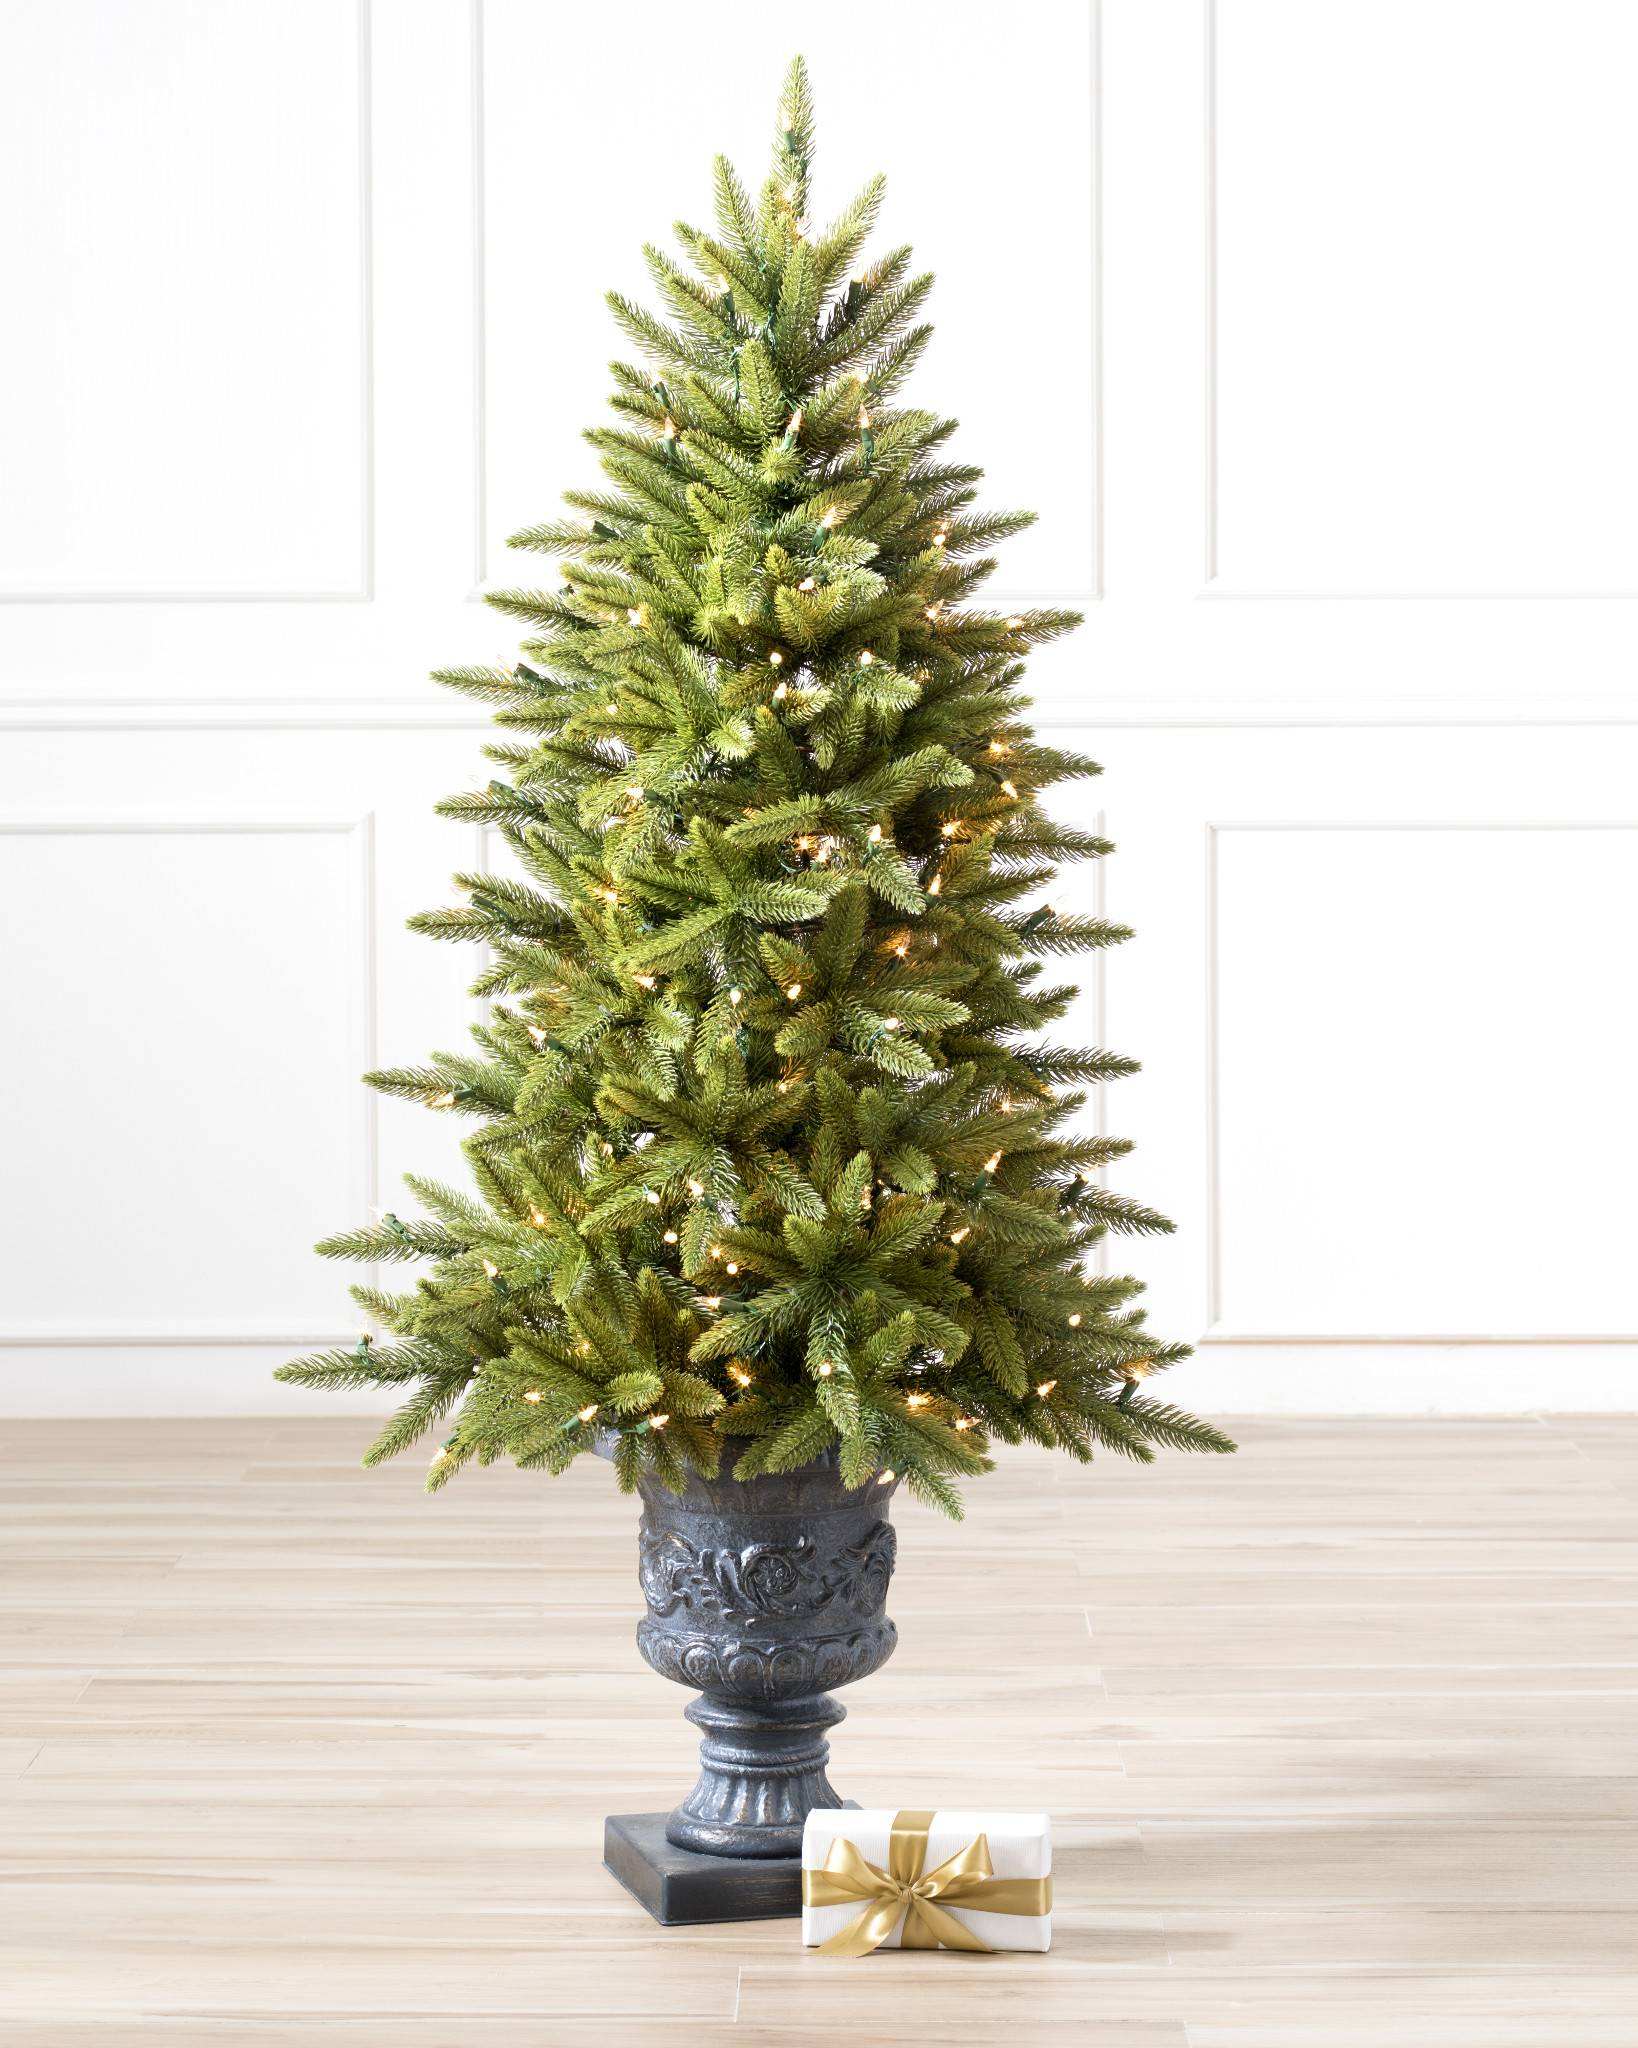 Highland Estate Potted Spruce Artificial Christmas Tree | Balsam Hill